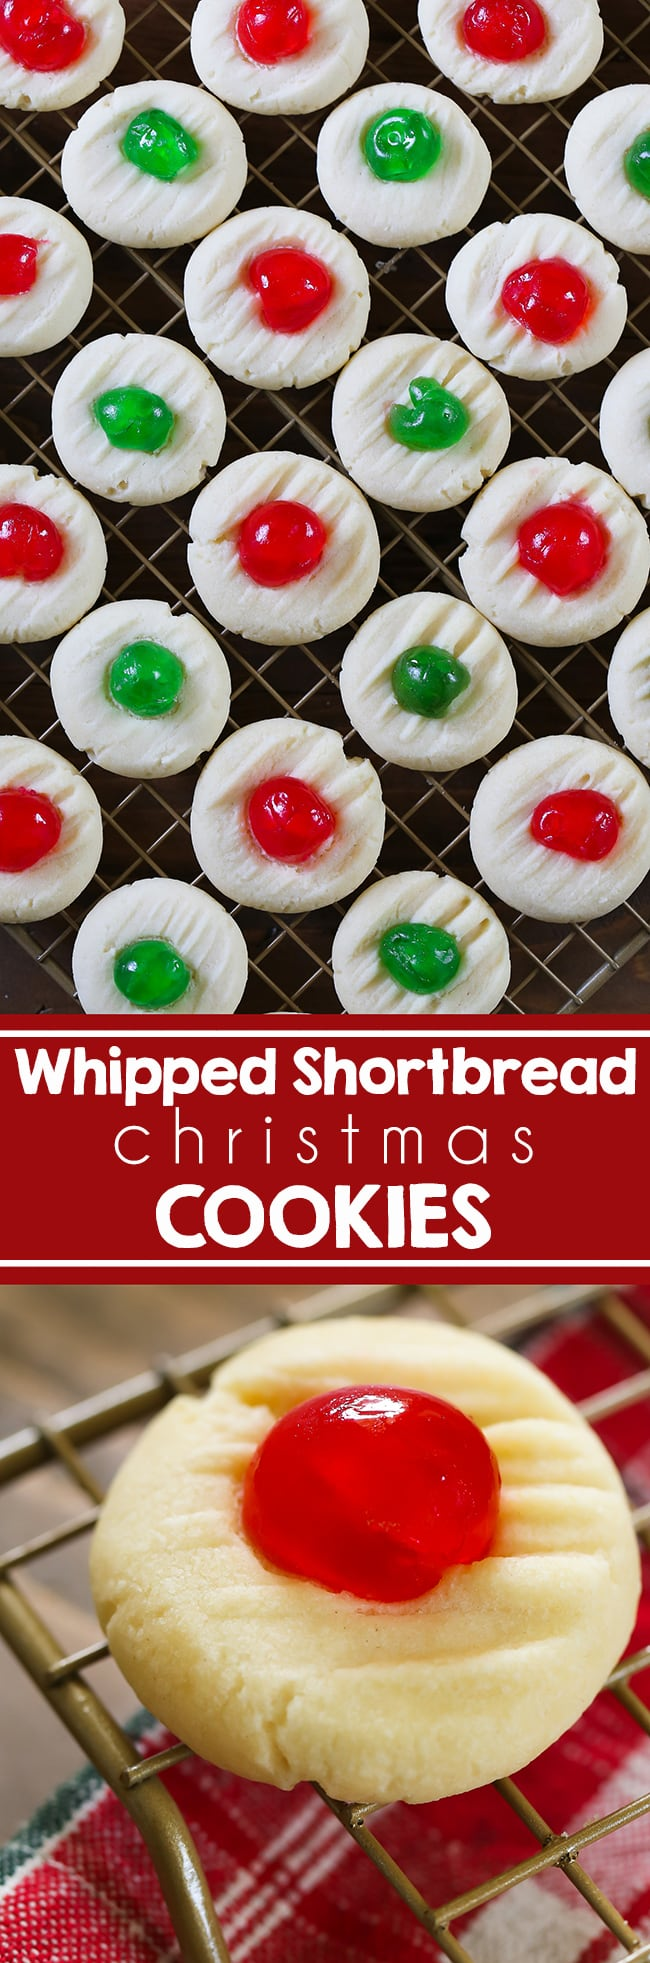 Melt in your mouth Whipped Shortbread Cookies made with just a few ingredients.  Christmas is just a week away and these cookies are always popular for holiday parties and cookie exchanges.